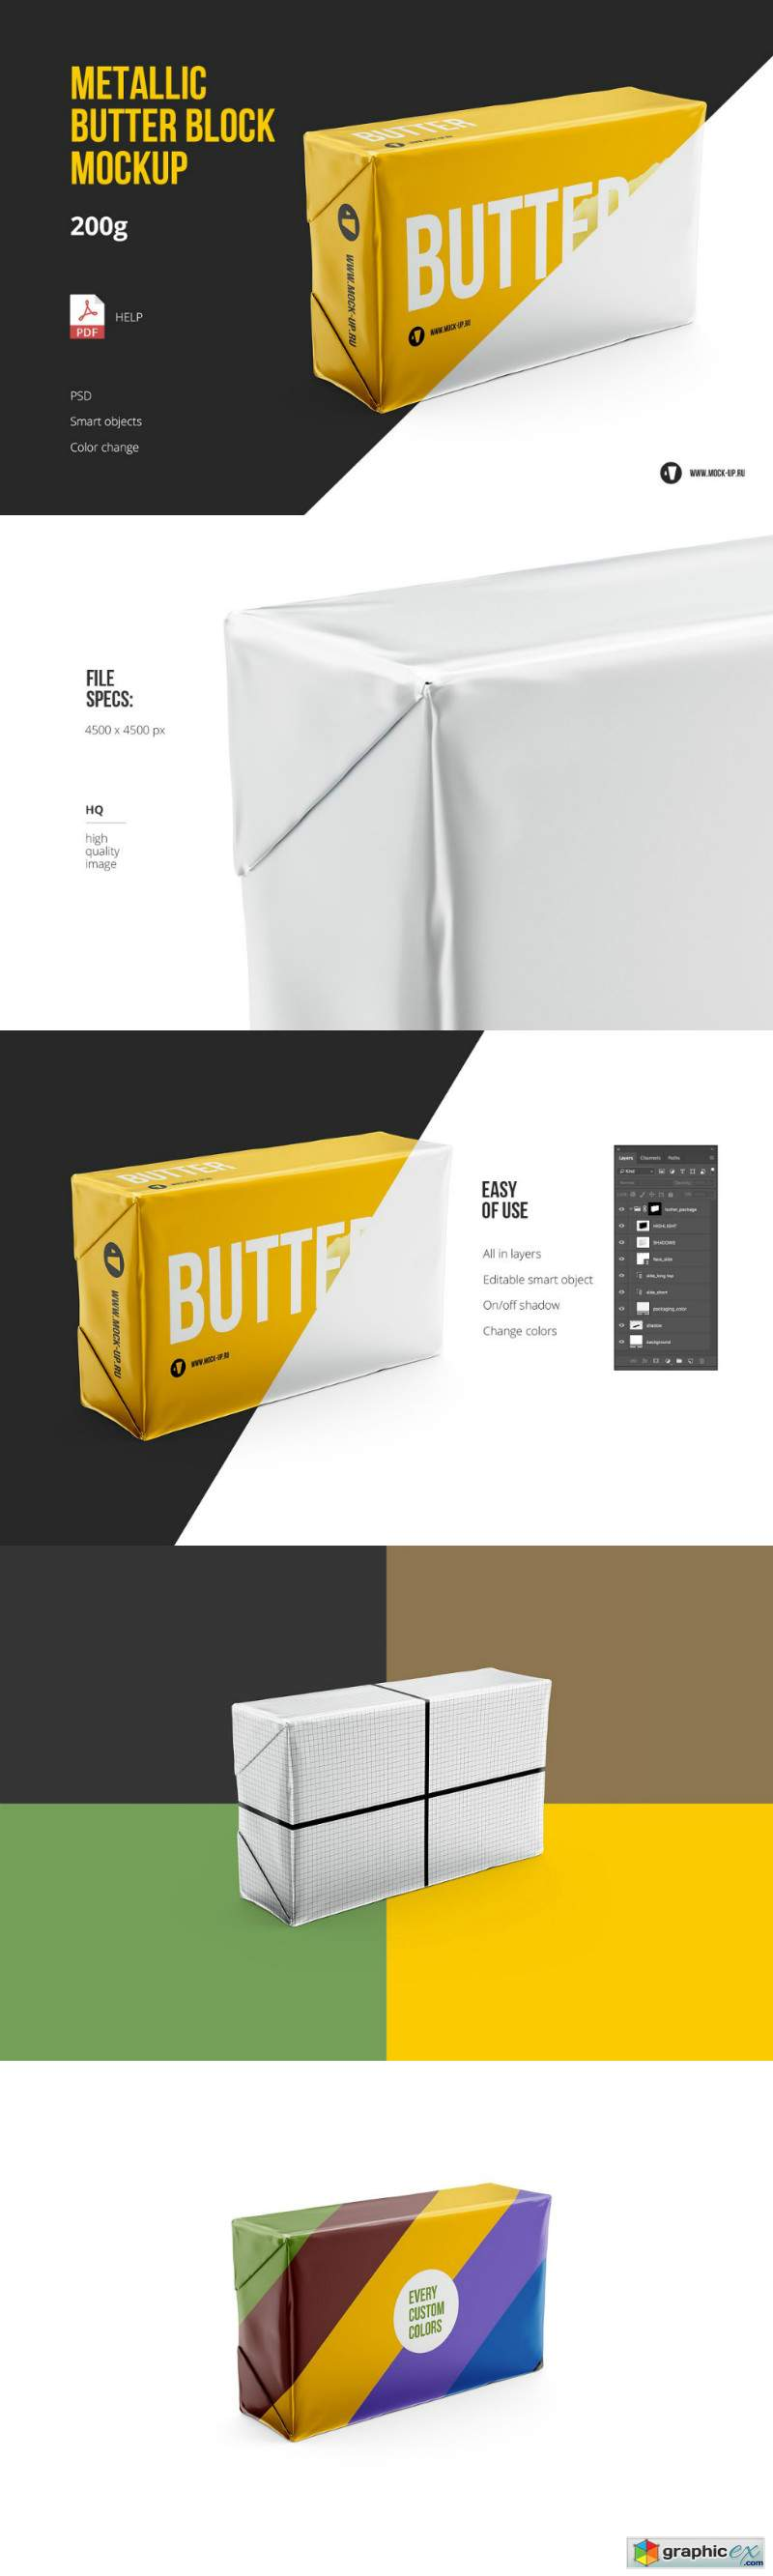 Butter 200g Front 3-4 view Mockup